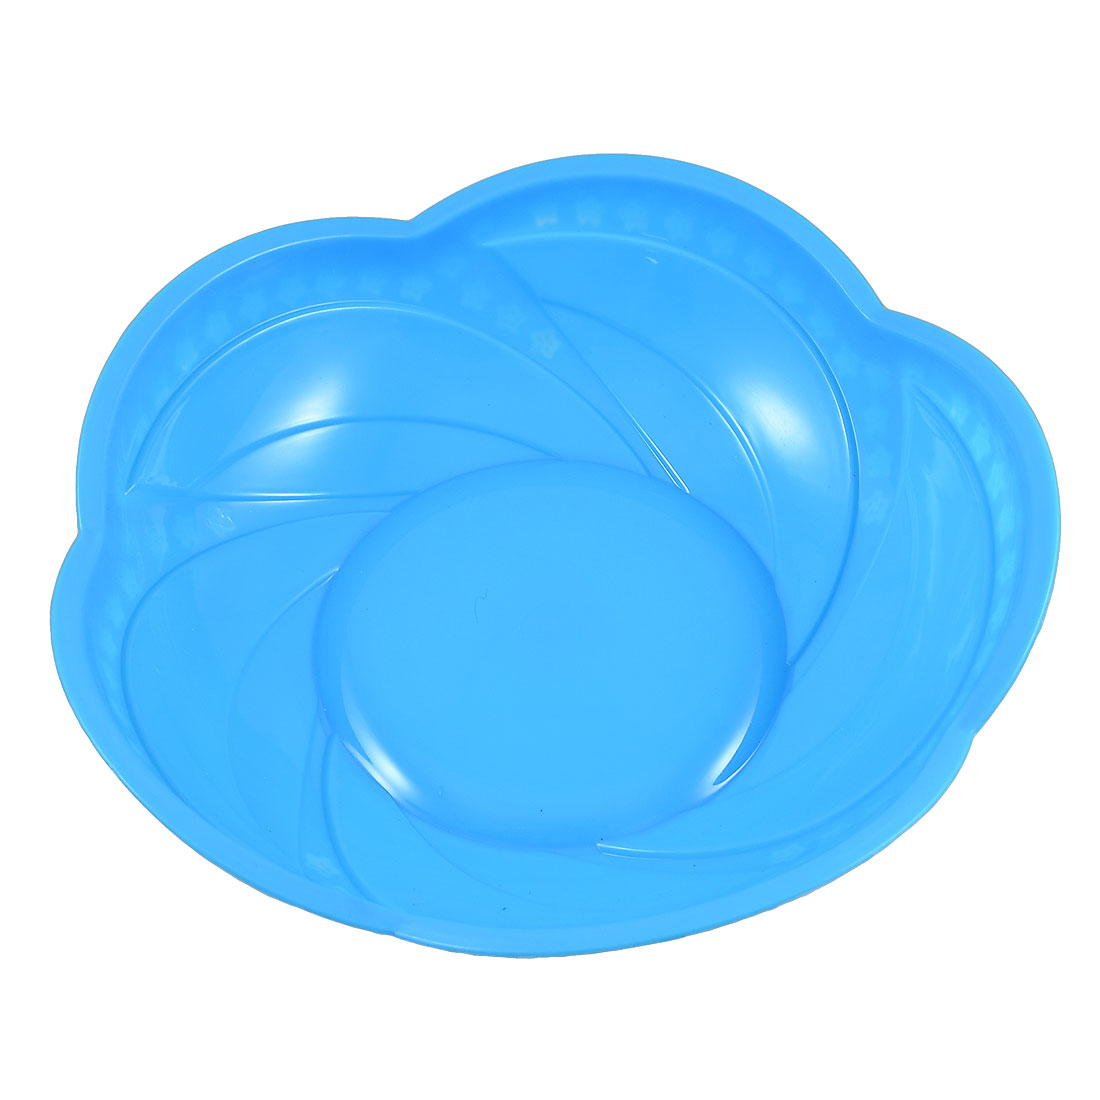 Home Kitchen Blue Plastic Floral Shaped Fruits Washing Container Plate